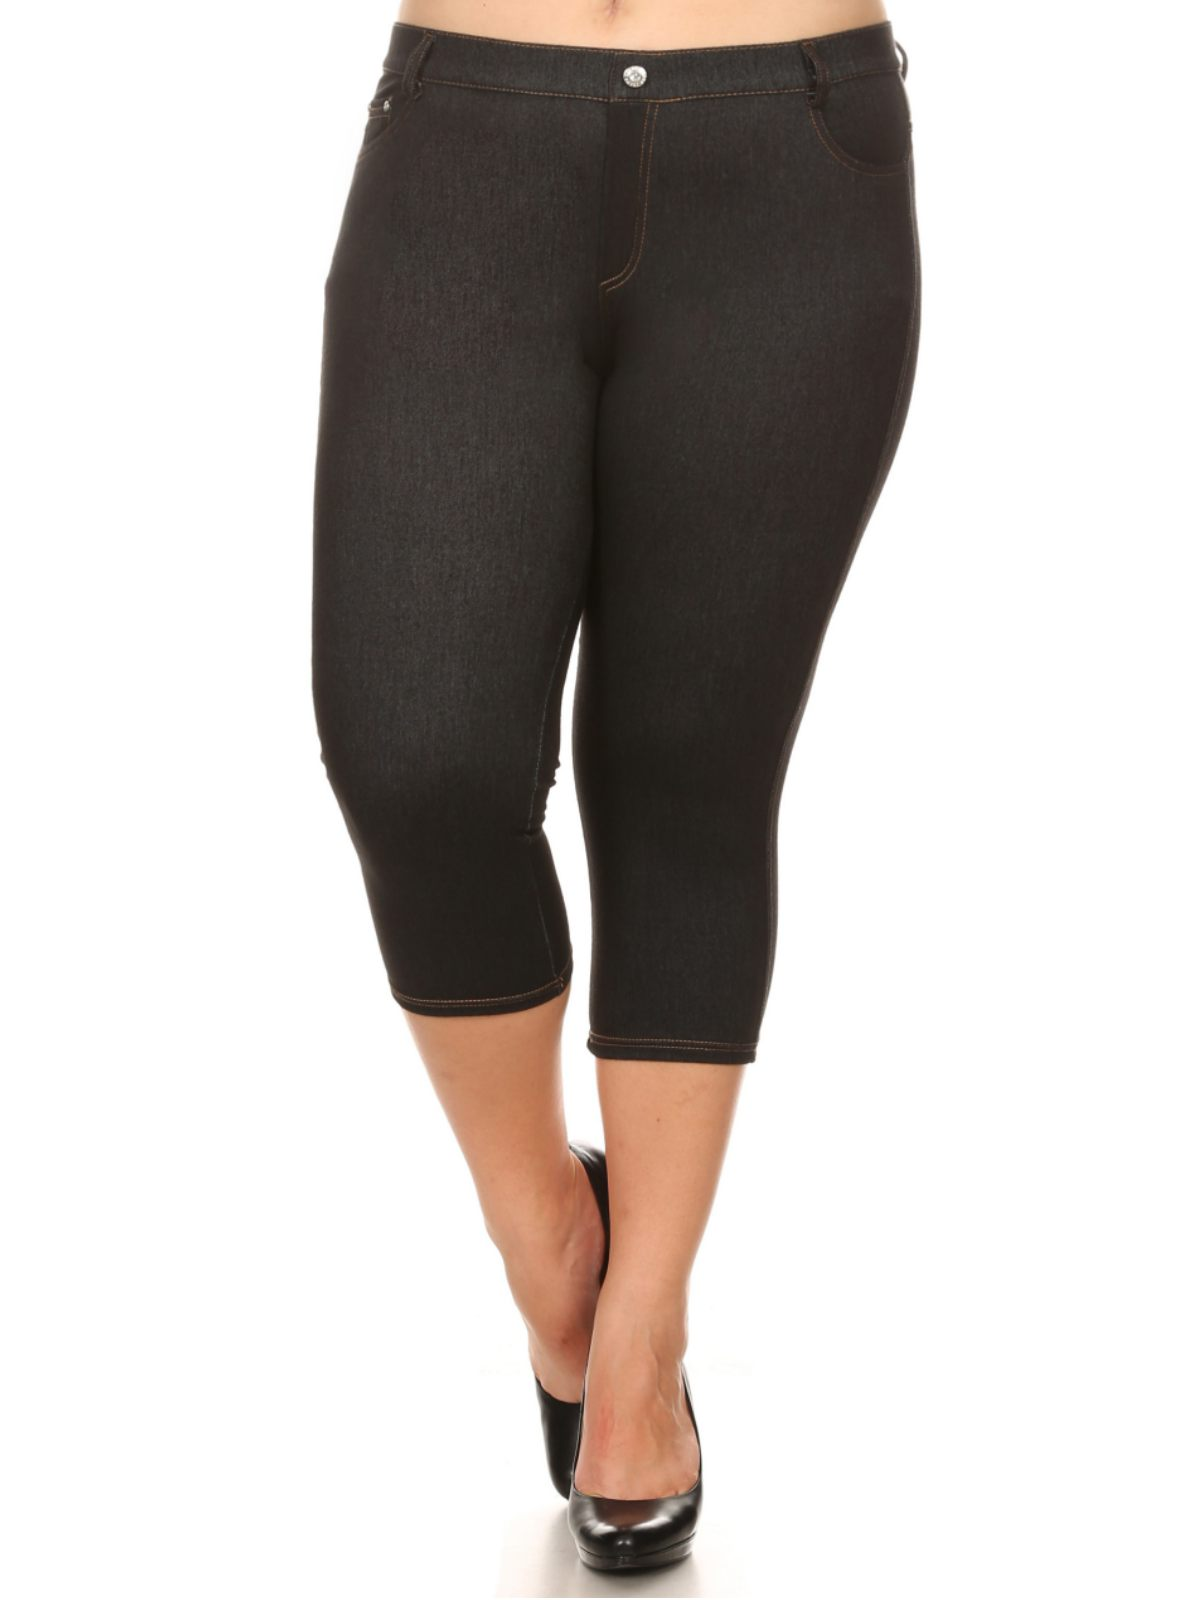 Yelete Plus Size French Knit Capri Jeggings with Faux Fly and Contrast Stitching